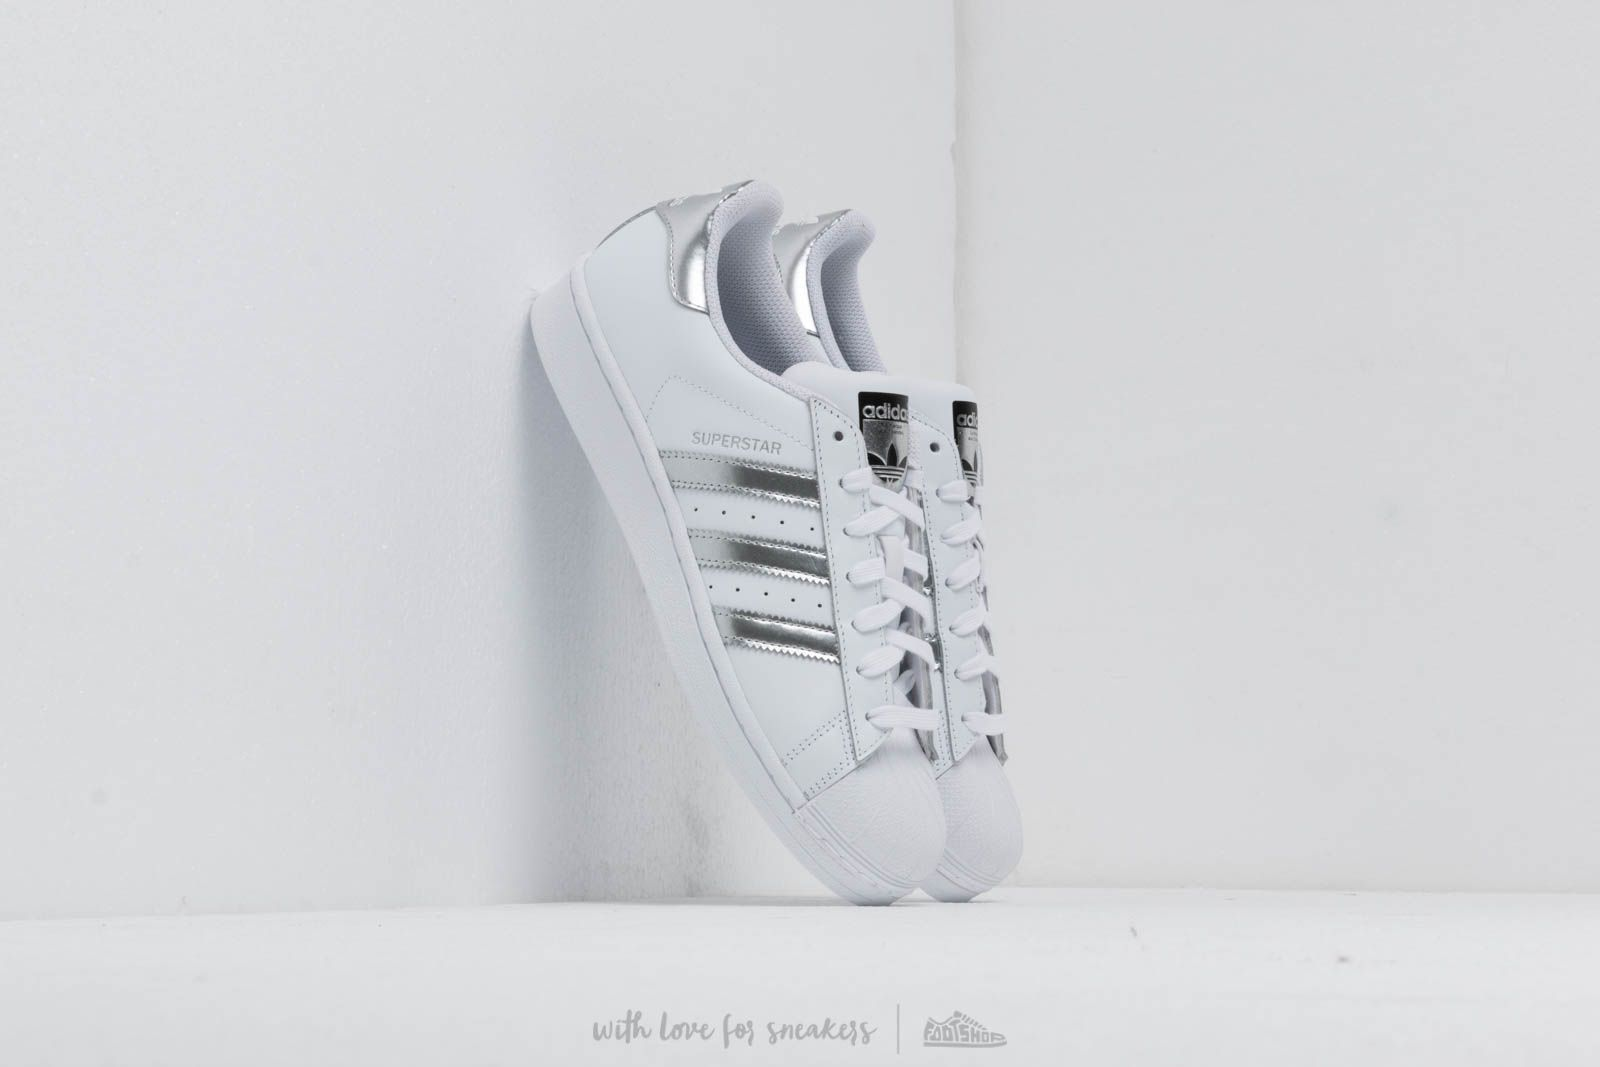 adidas Superstar Ftw White/ Silver Metallic/ Core Black